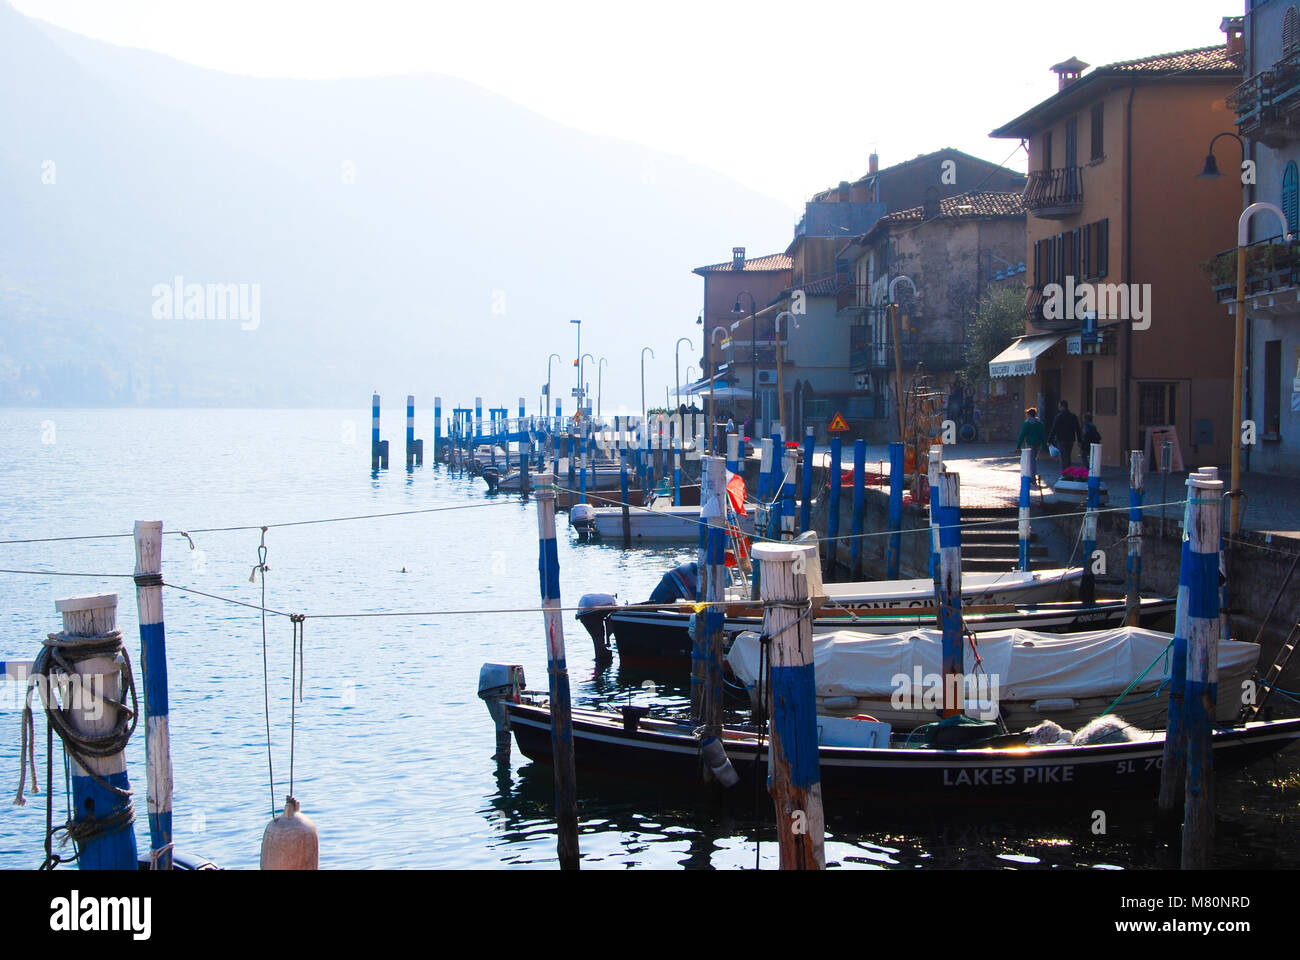 Little docking in the Montisola island in the middle of Iseo Lake - Italy - Stock Image